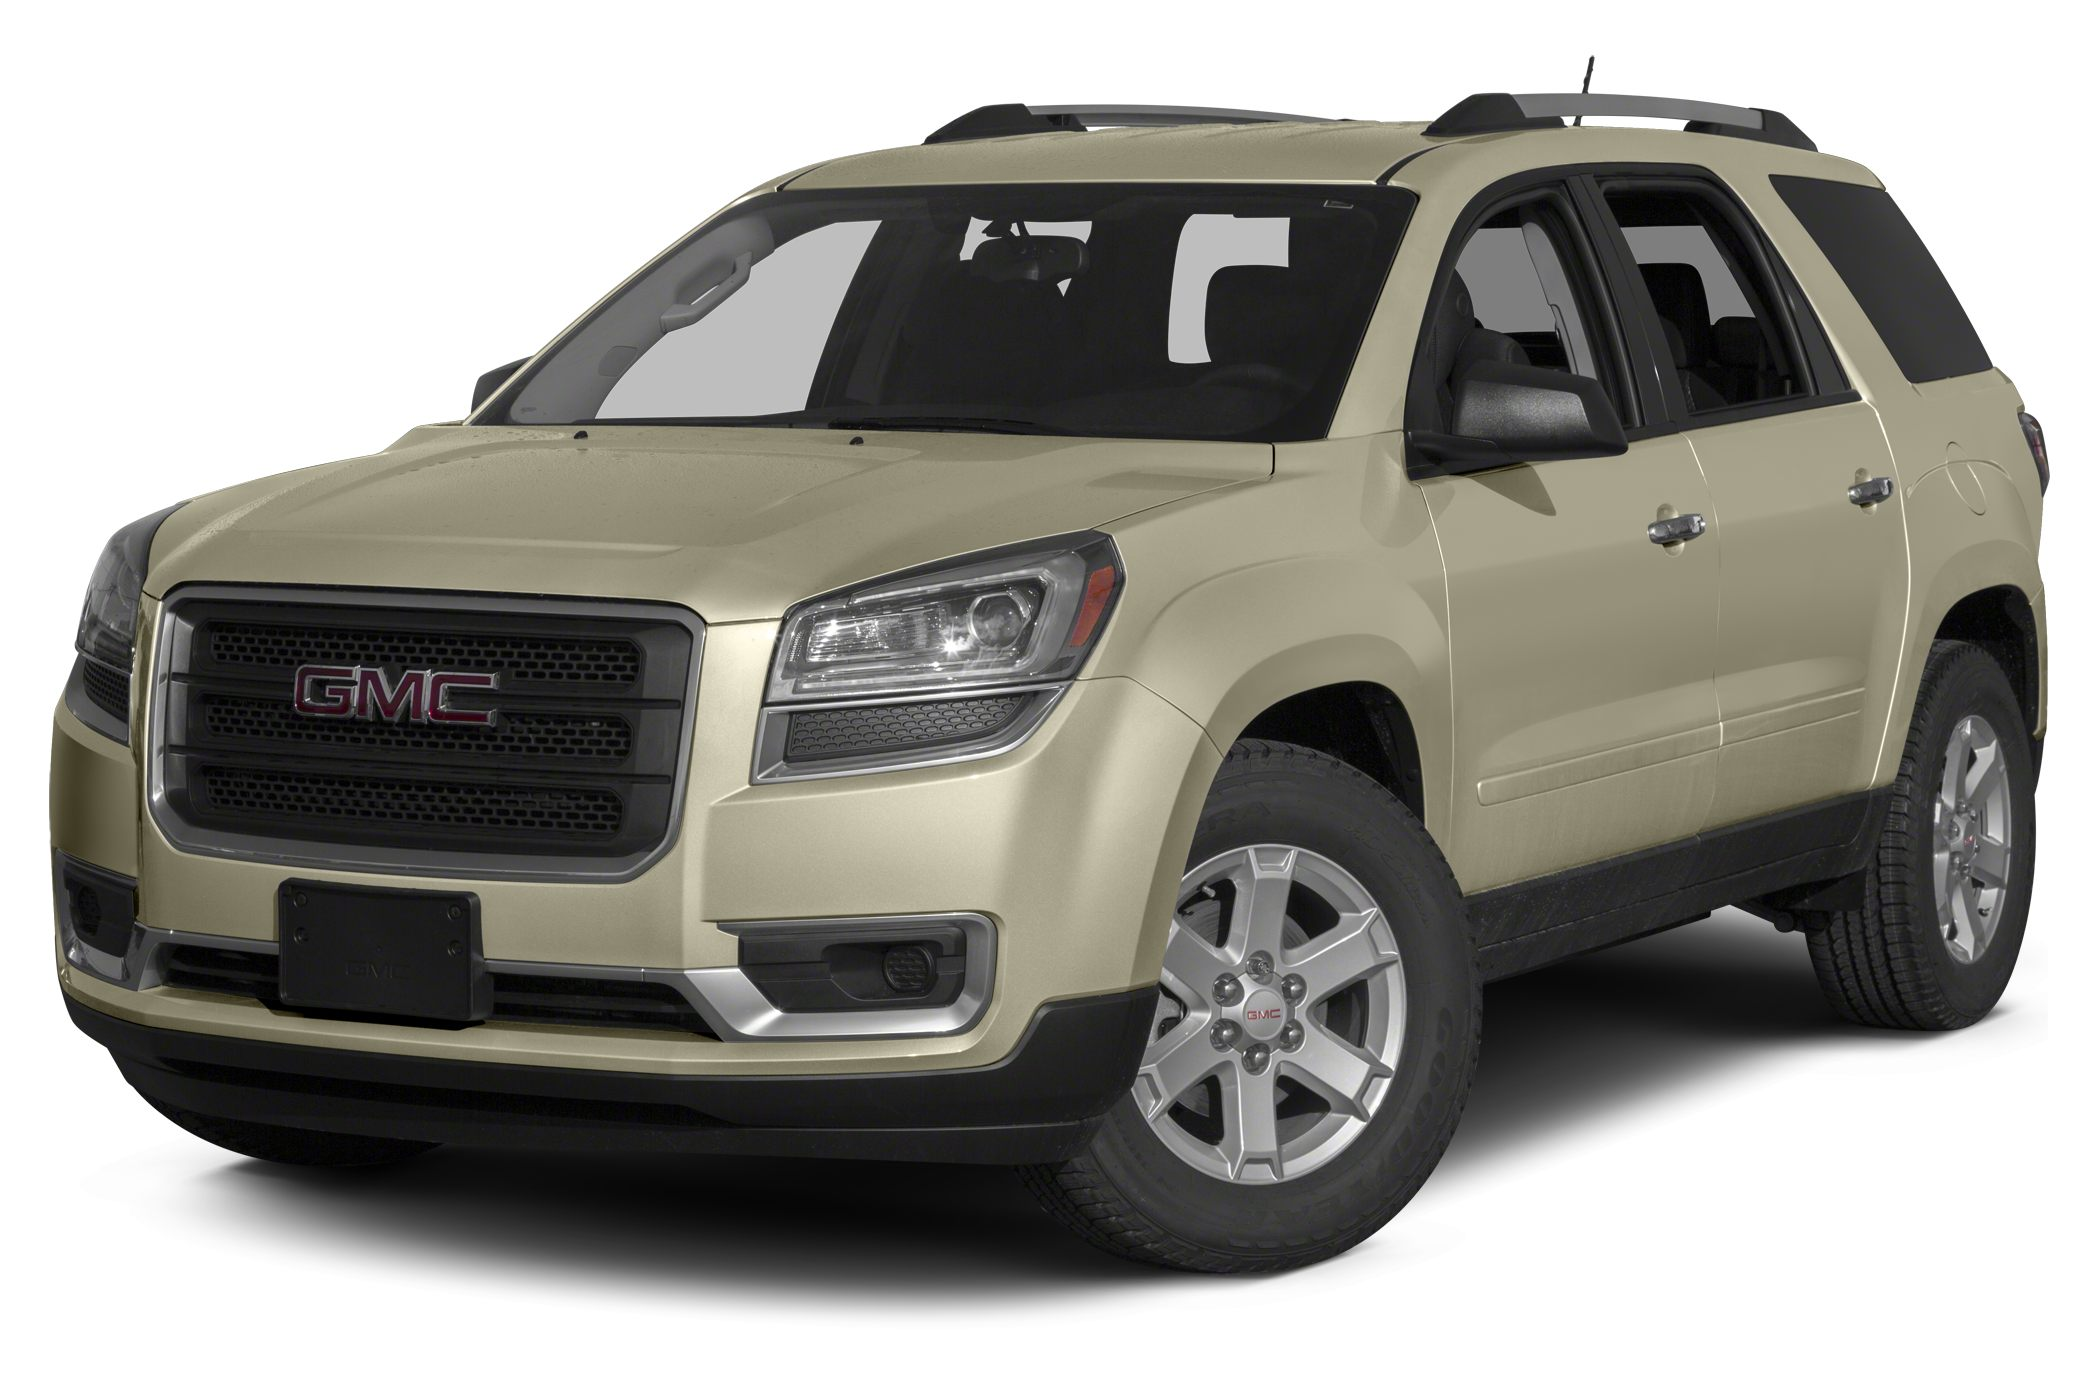 2014 GMC Acadia SLE-2 SUV for sale in Quarryville for $39,975 with 0 miles